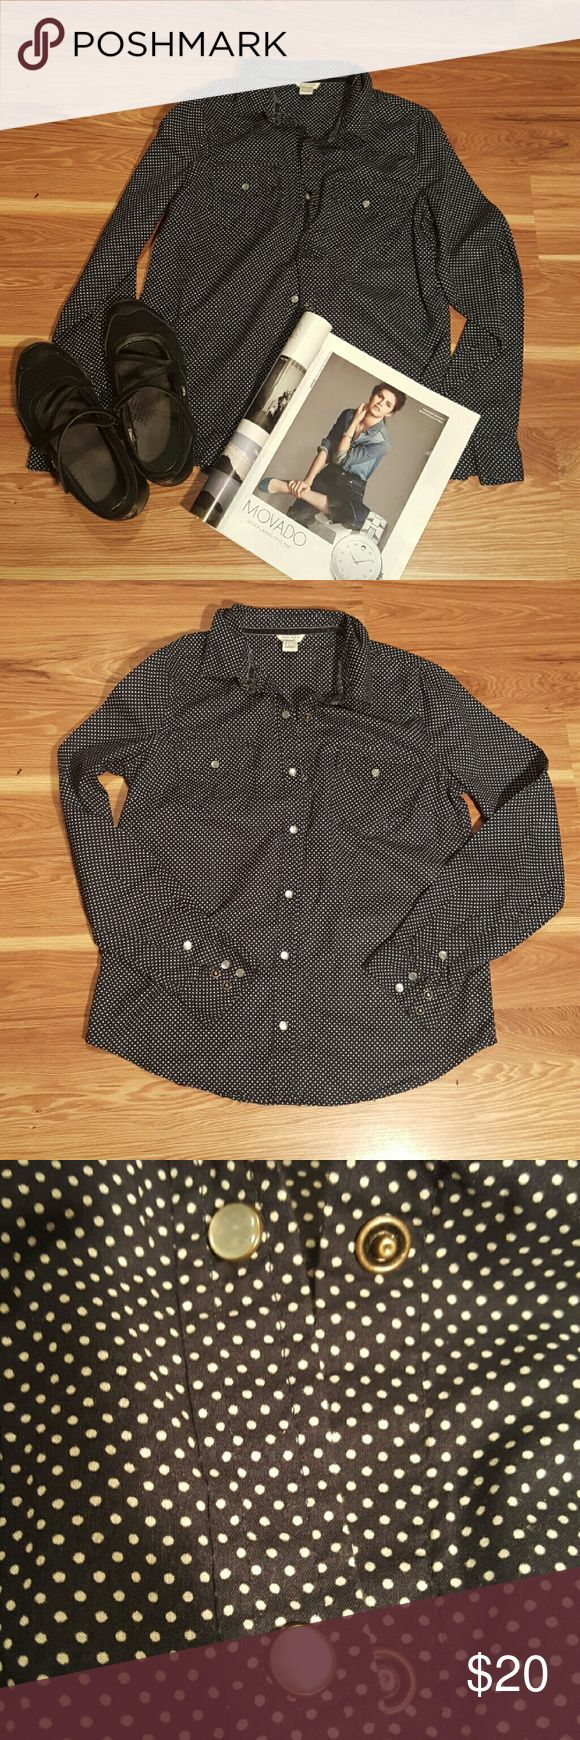 🆕F21 navy blue button down shirt☯ Cute and casual button down shirt in Navy Blue with white Polka dots. Lightweight fabric....100% cotton. Worn once. Make me an offer ladies!!! Help me clear out my closet!! Forever 21 Tops Button Down Shirts